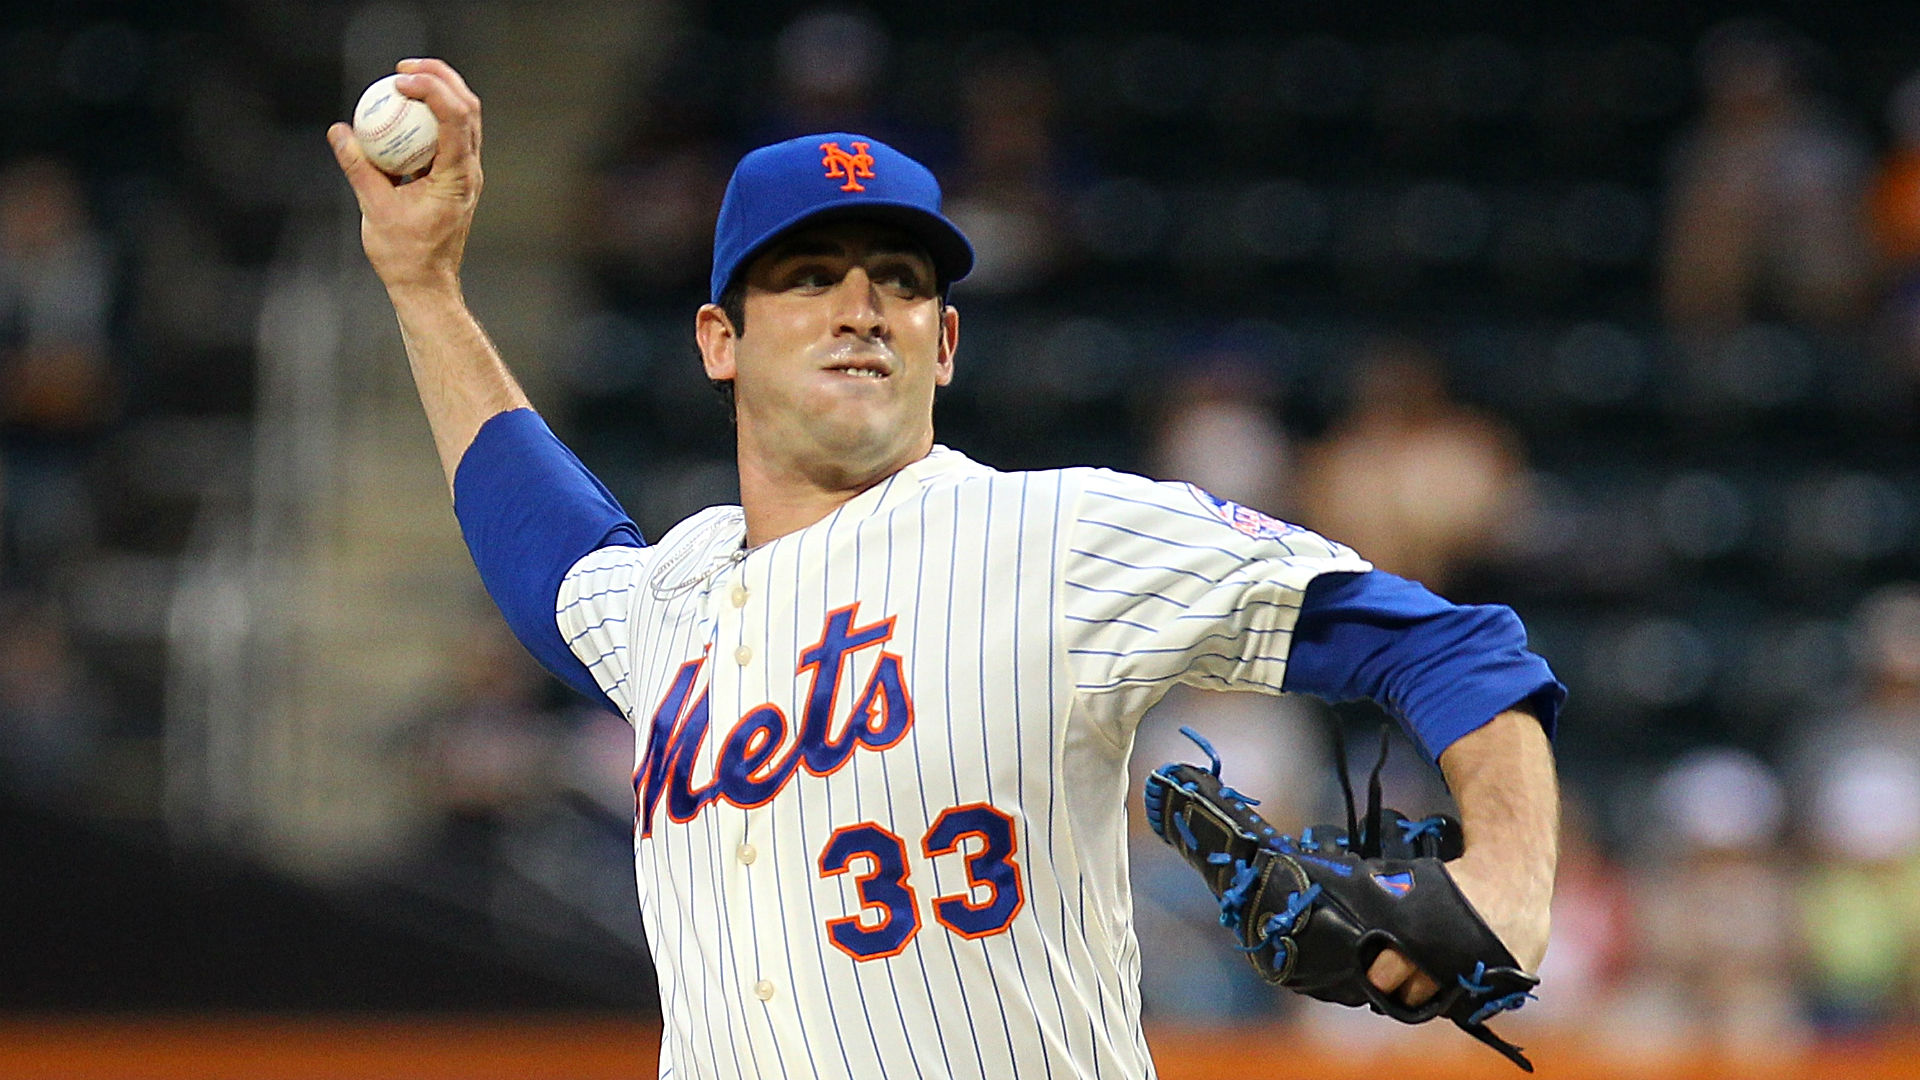 Scott Boras: Mets' six-man rotation 'prudent' for Matt Harvey